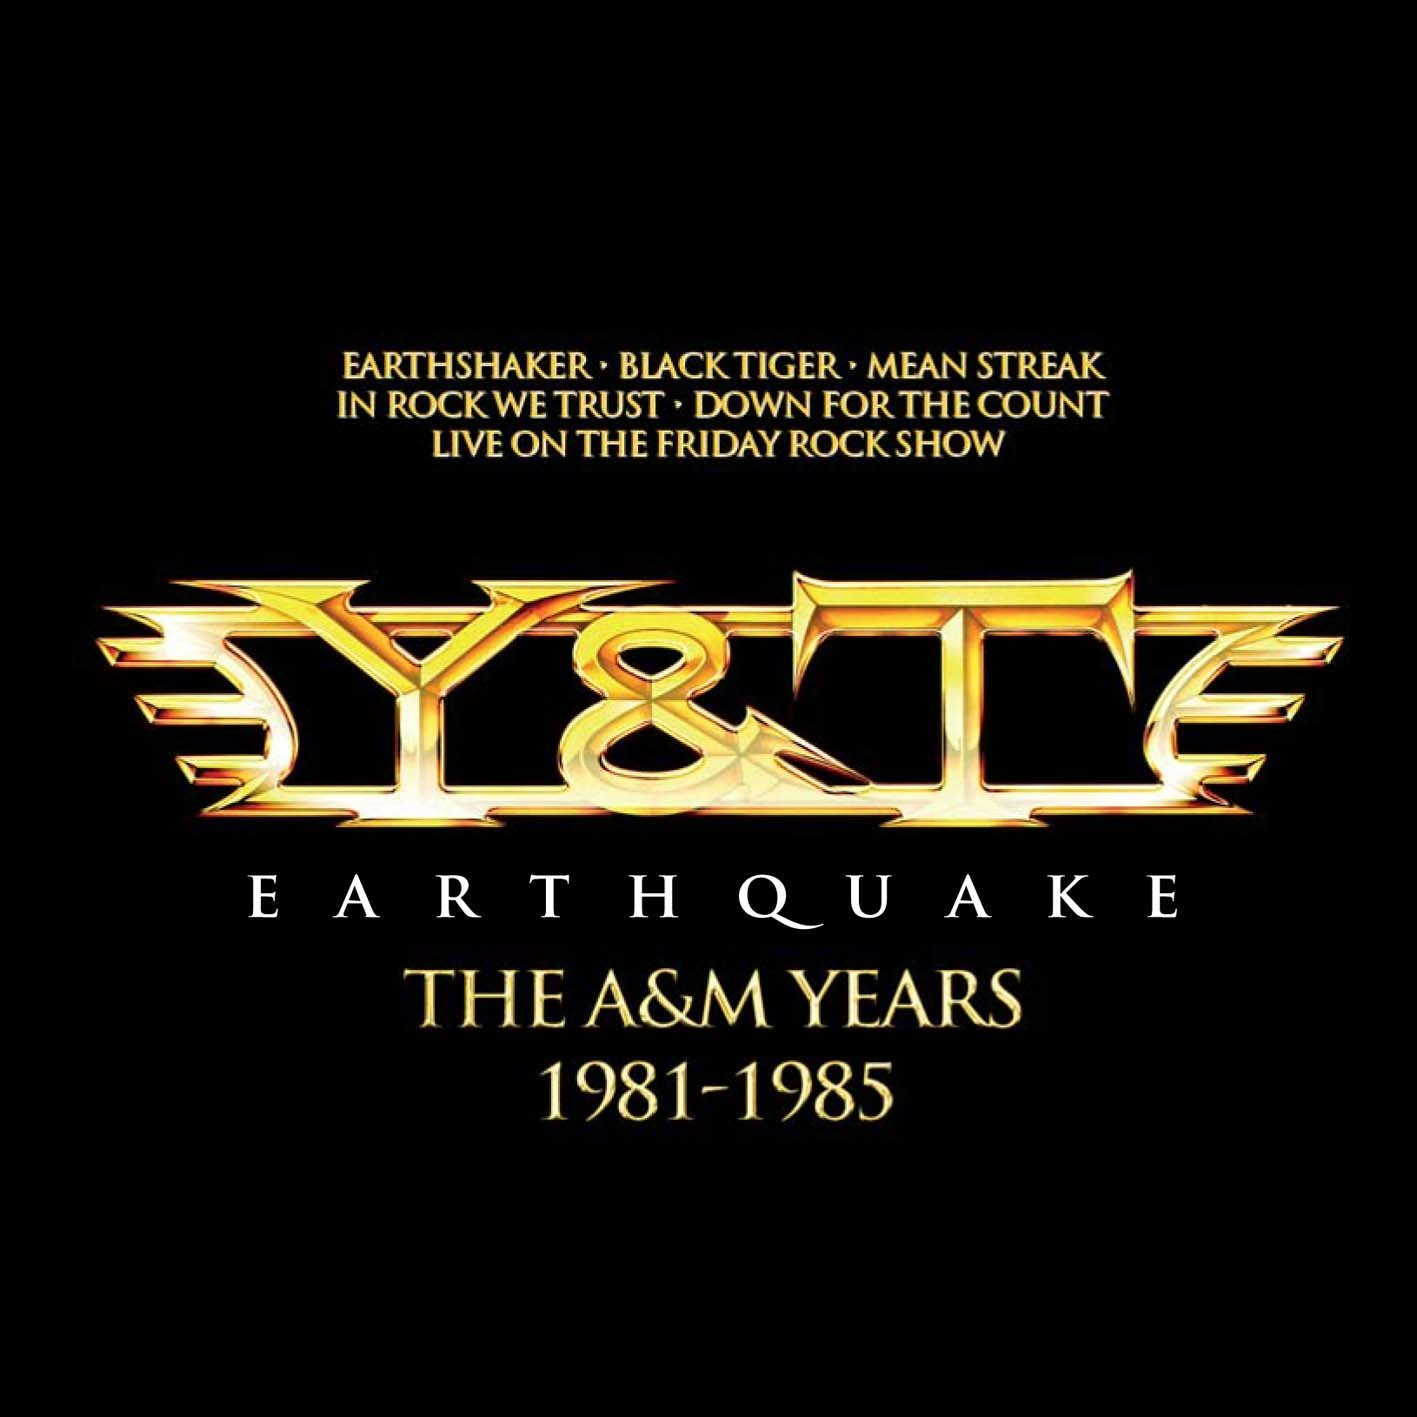 Earthquake – The A&M Years 1981-1985